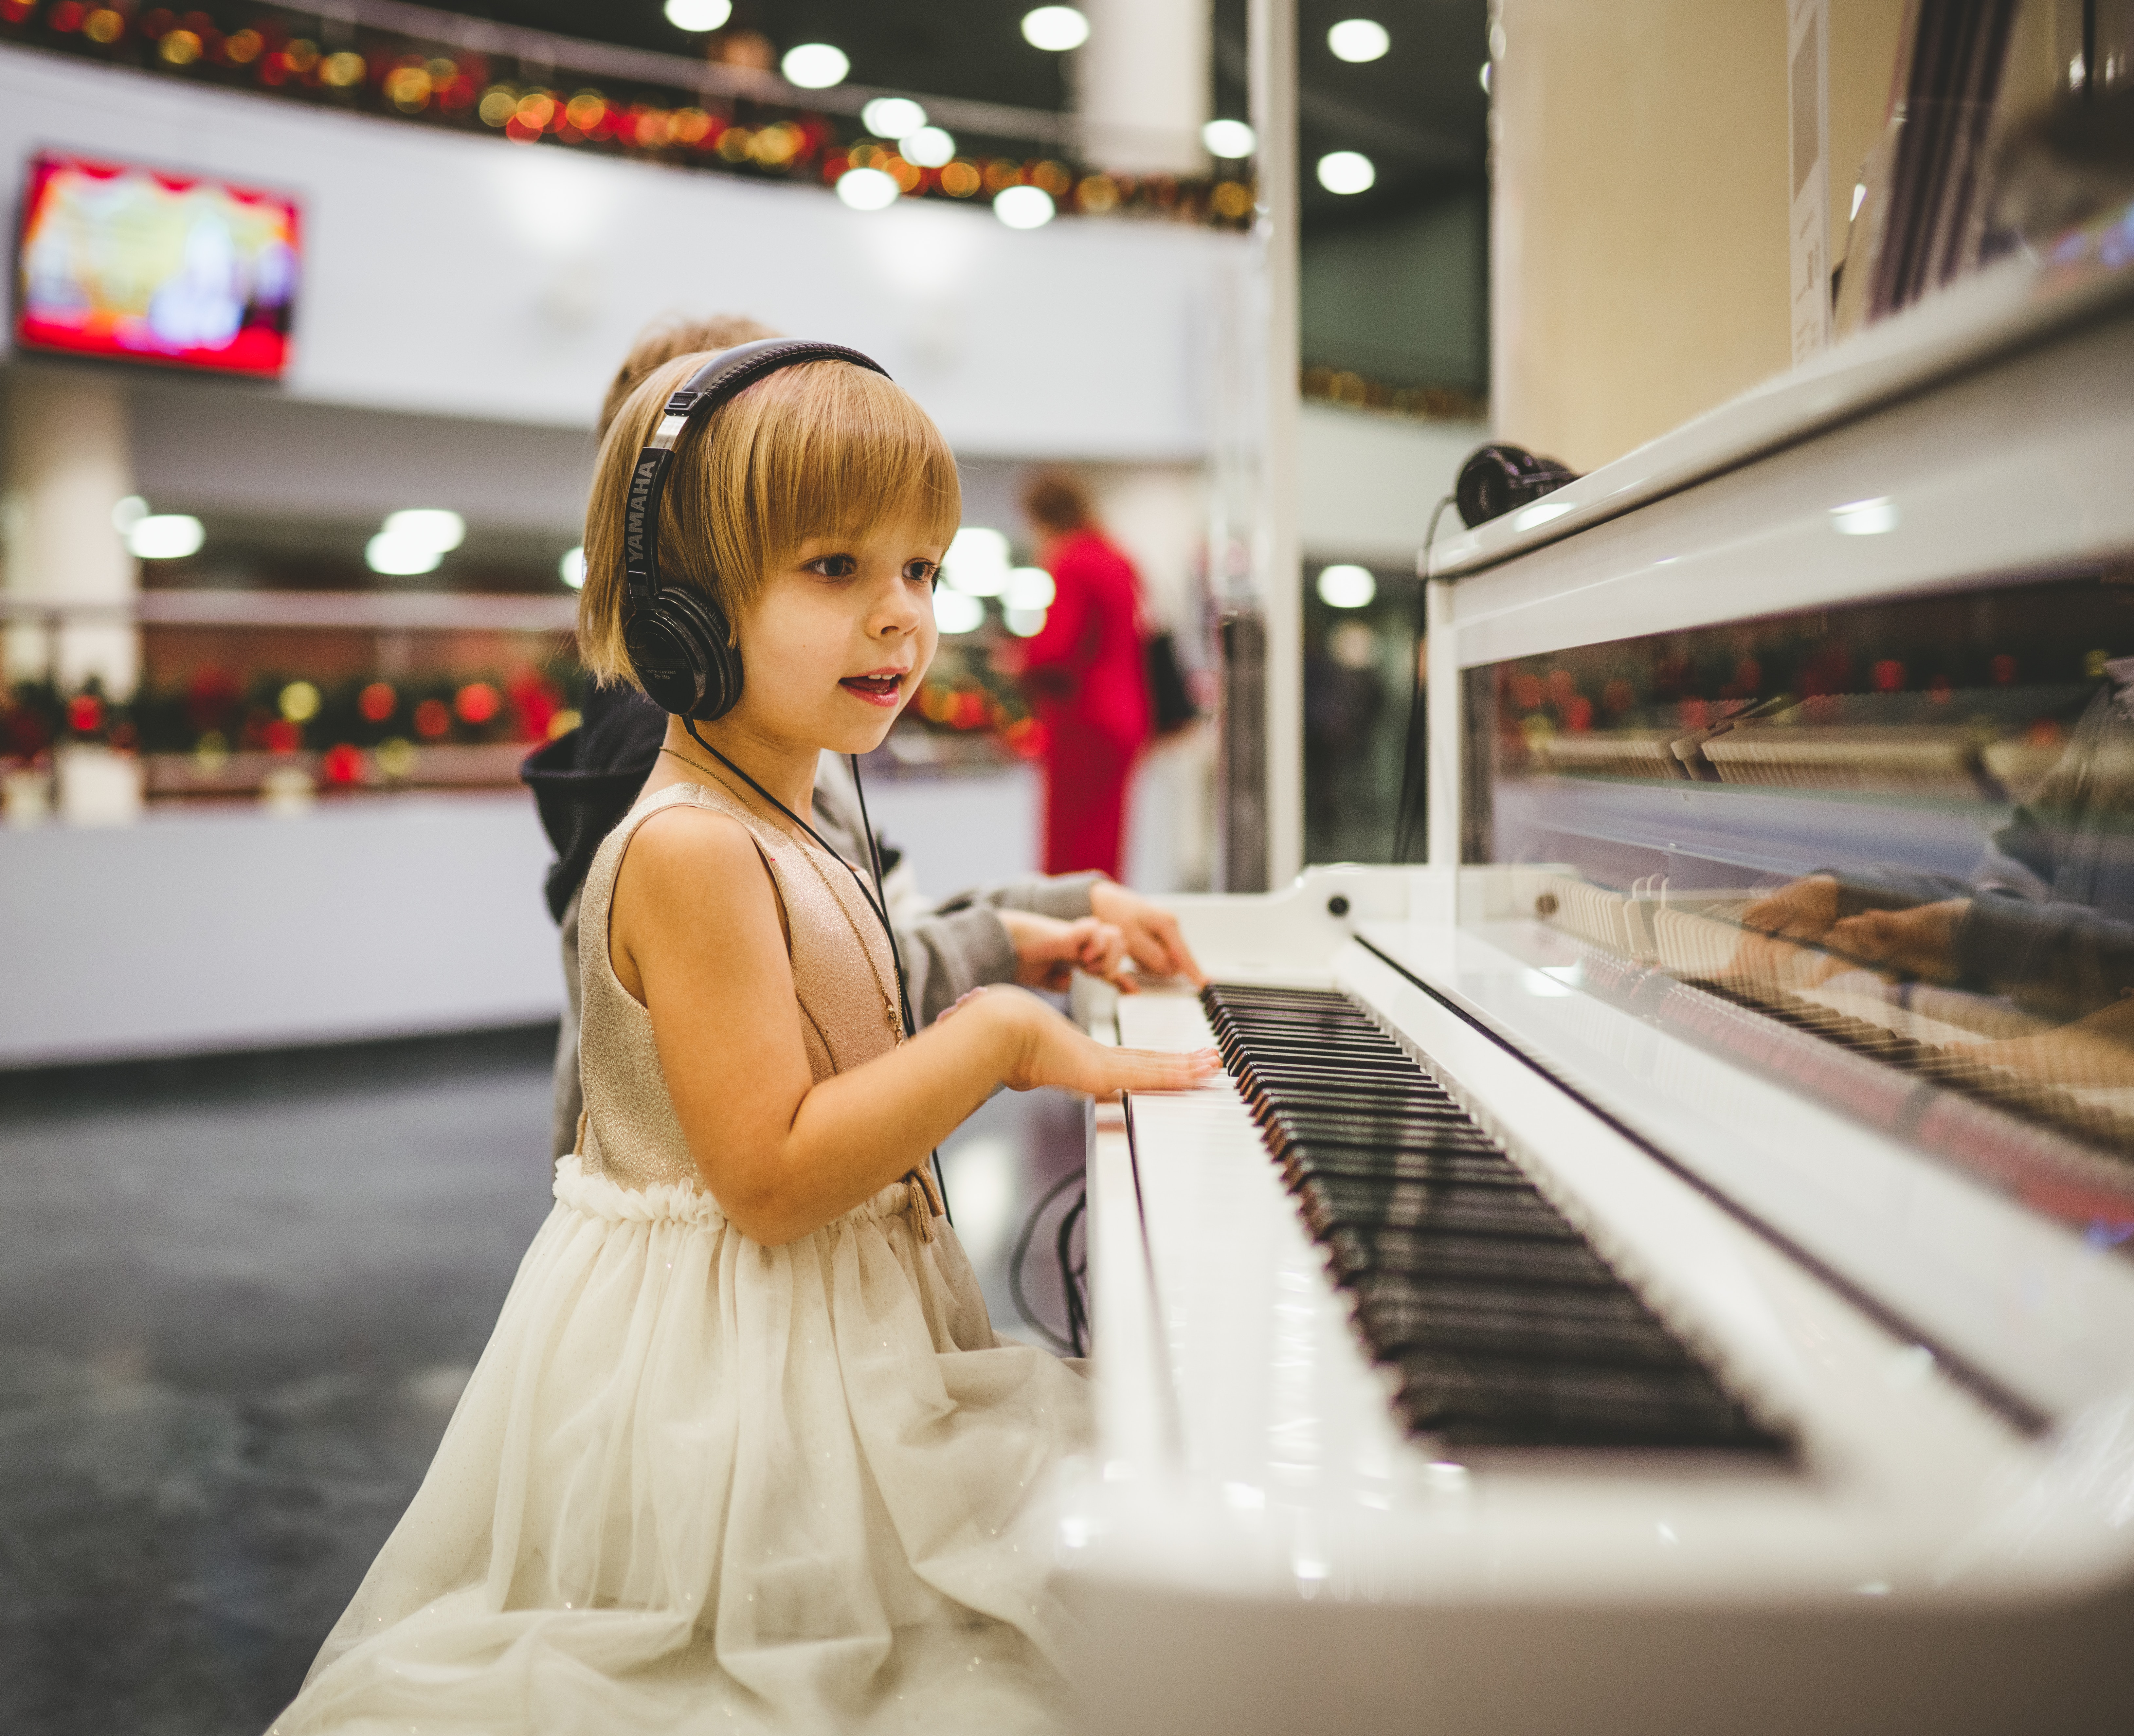 Top 10 Best Piano for Kids in 2020